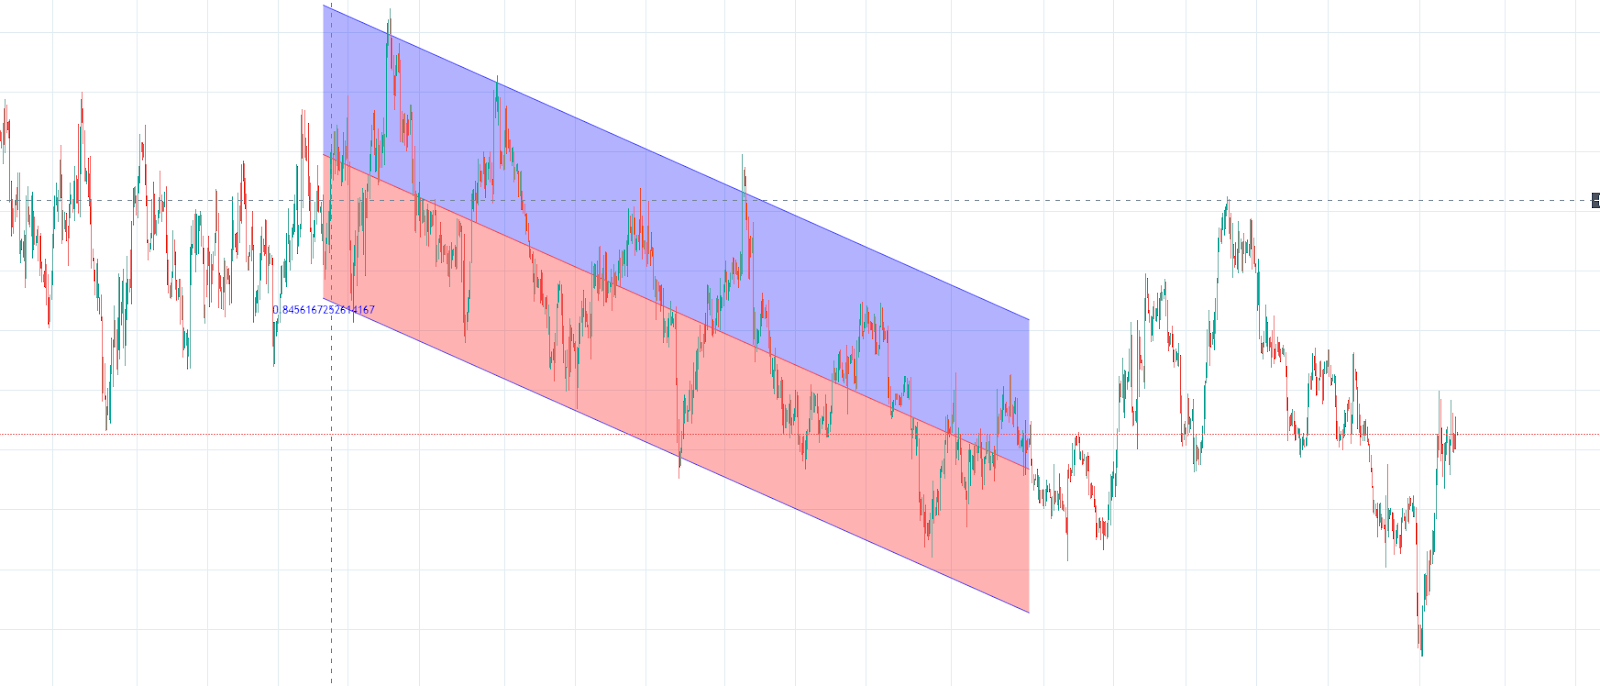 Bitcoin price chart with linear progression channel